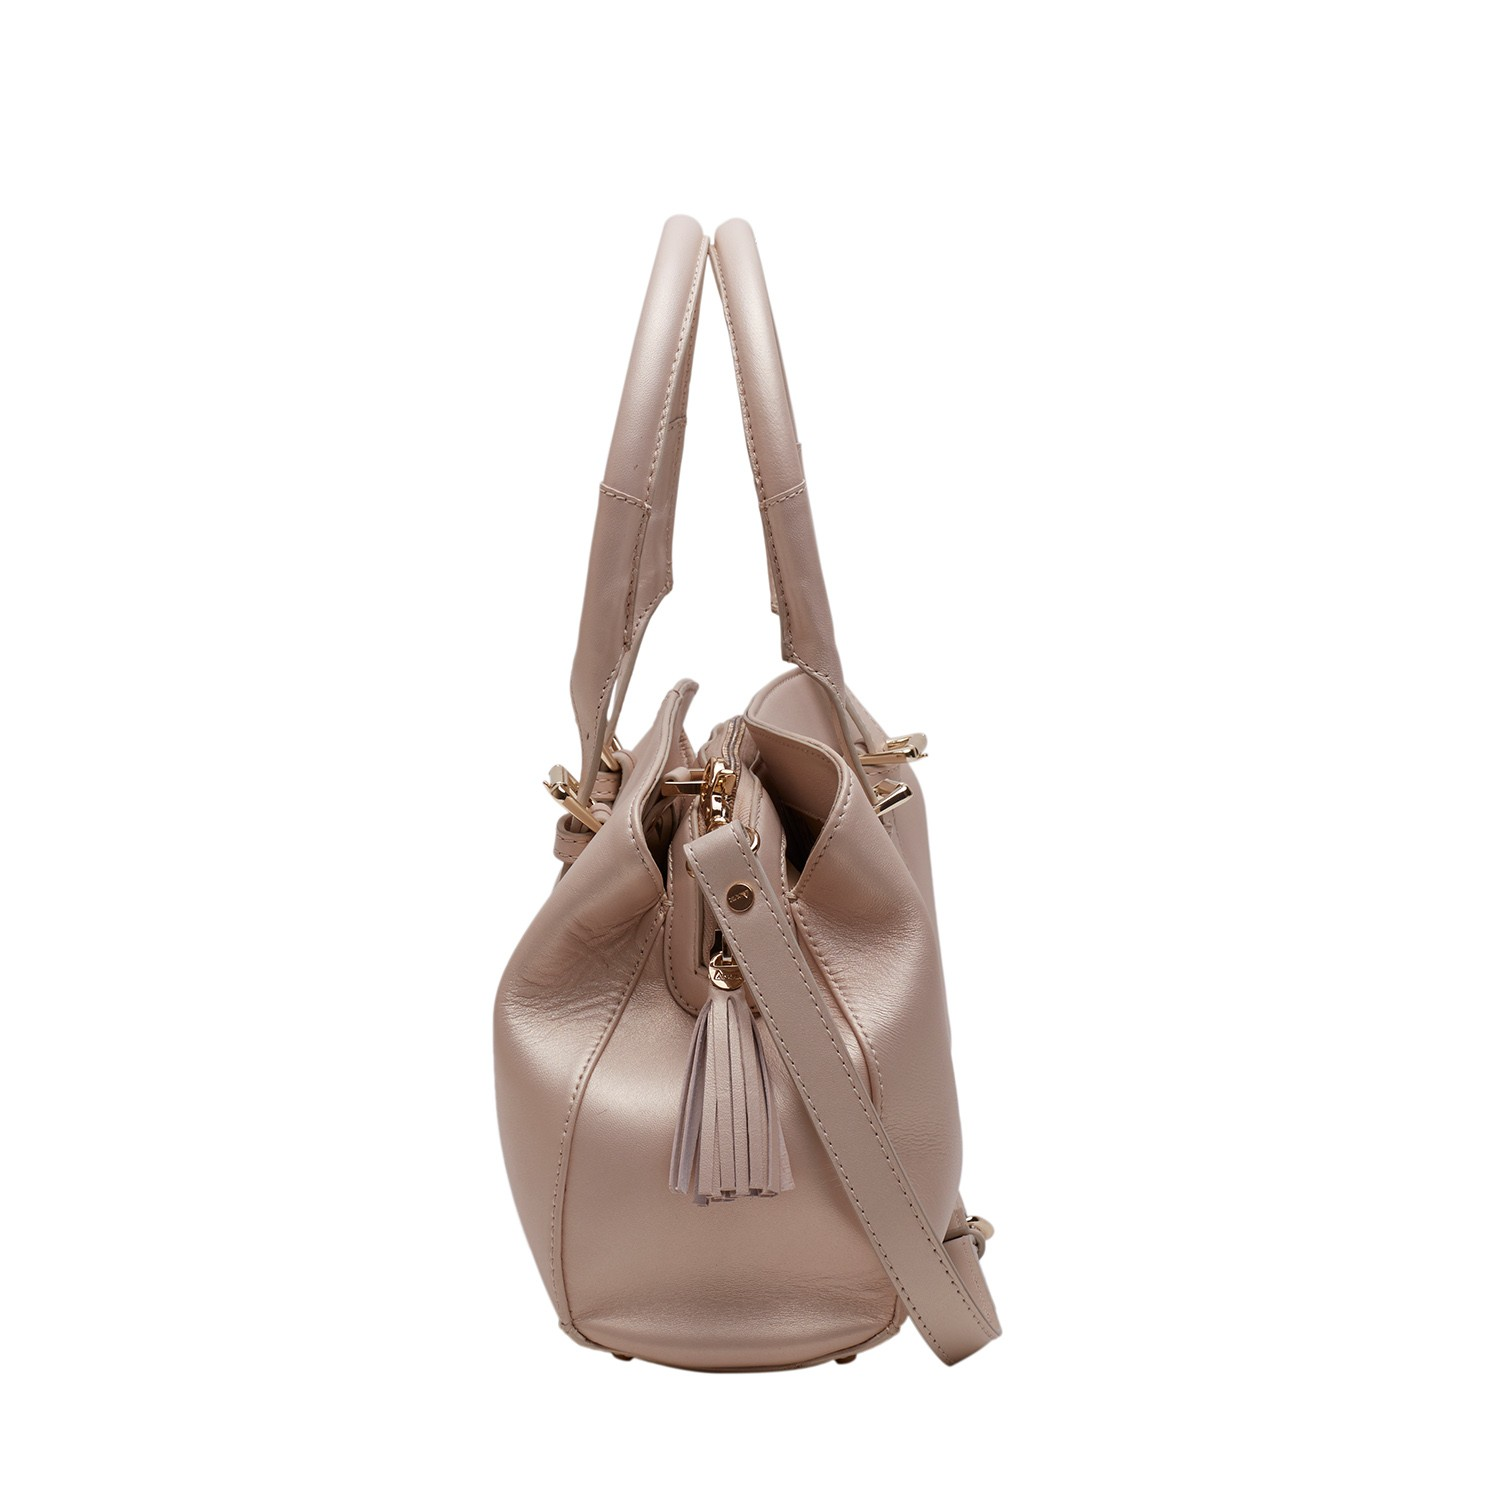 ACUIR Handbag for Women, Baguette,Champagne Pearl